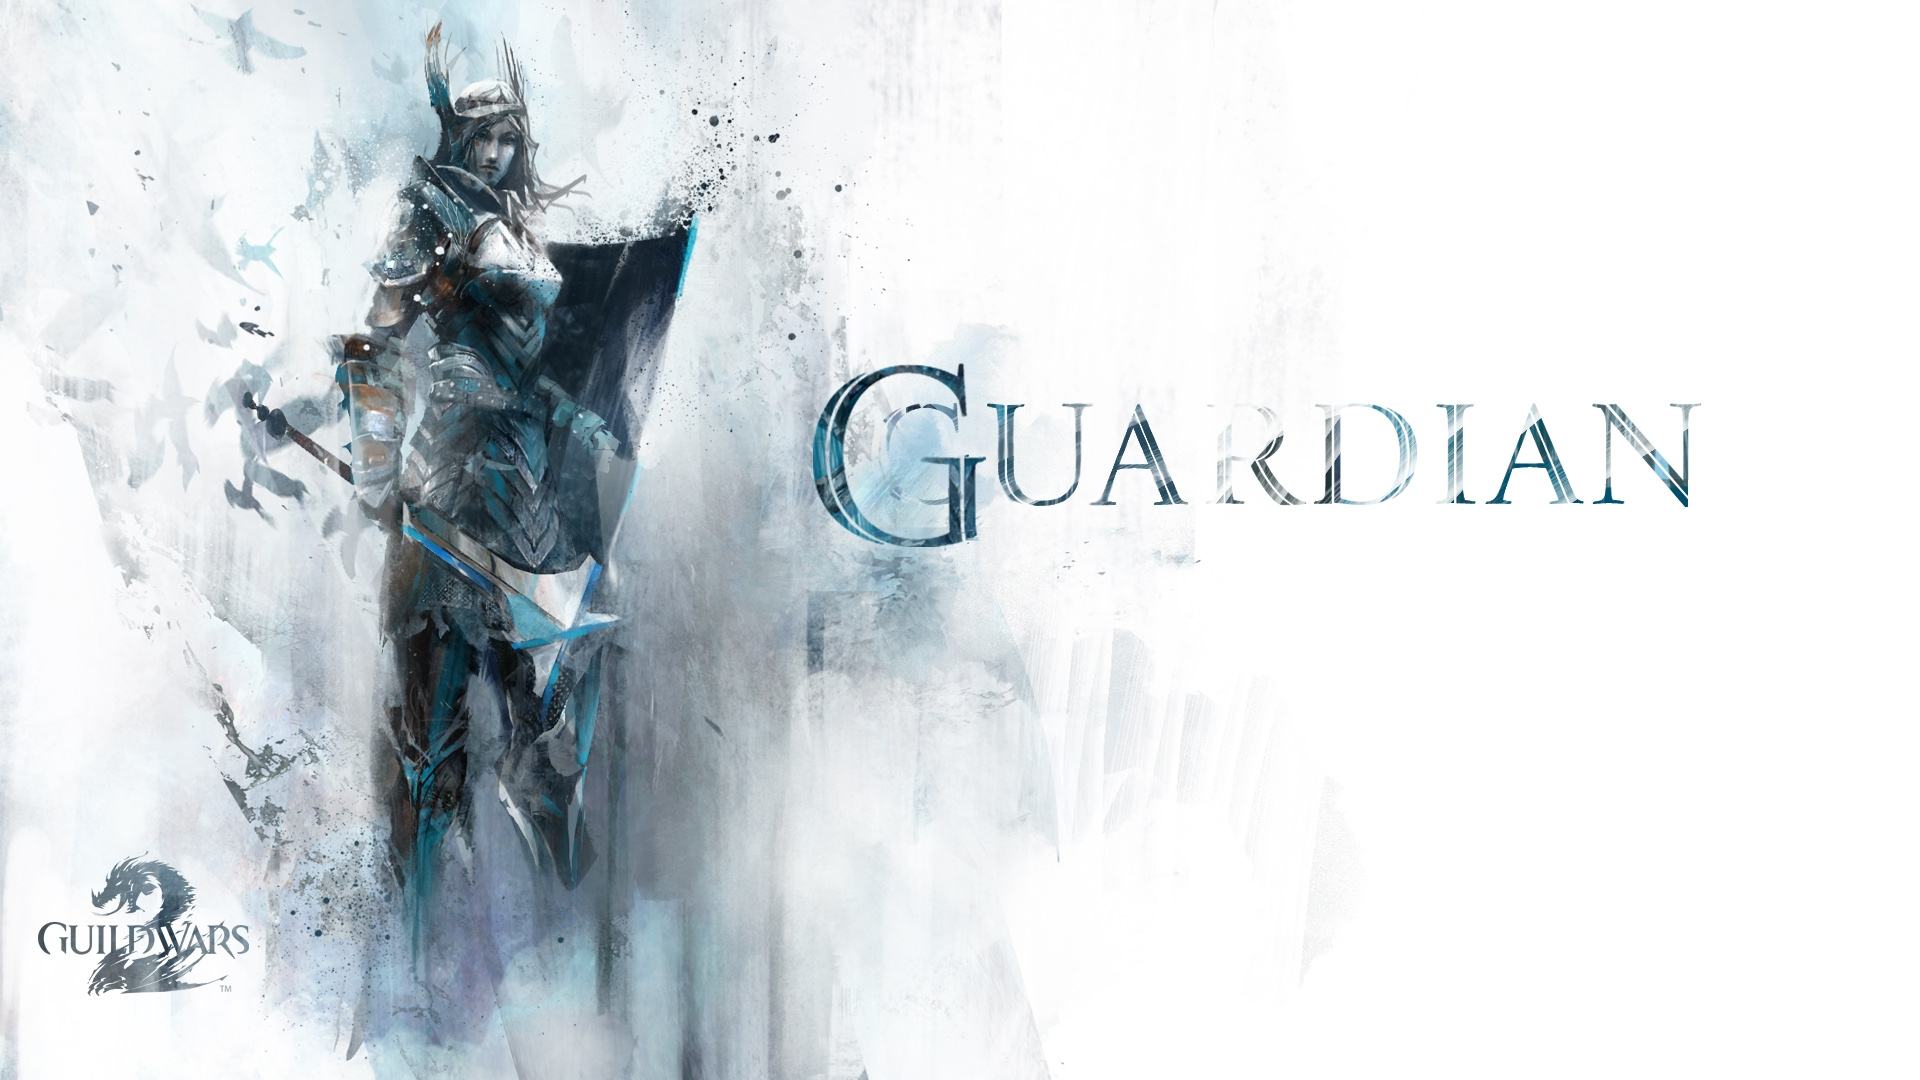 Guild Wars 2 Full Hd Wallpaper And Background Image: Guild Wars 2 Wallpapers, Pictures, Images